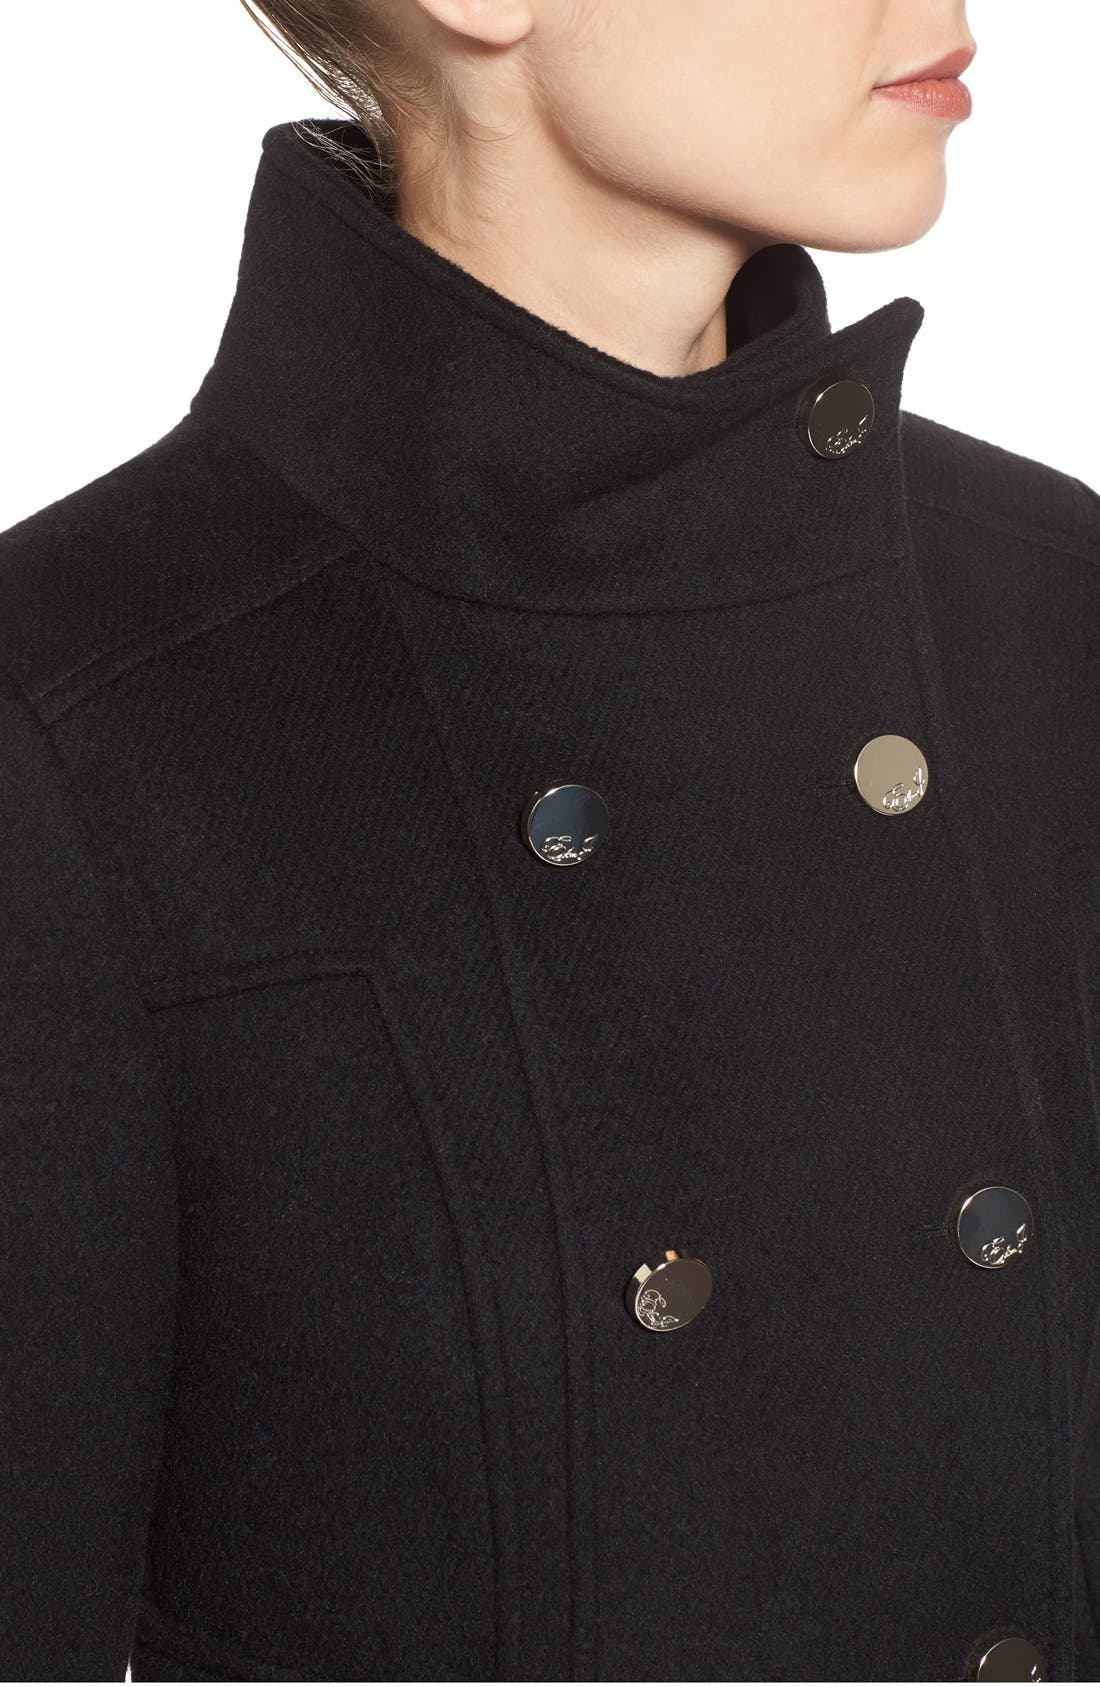 Wool Blend Long Military Coat,                             Alternate thumbnail 5, color,                             001